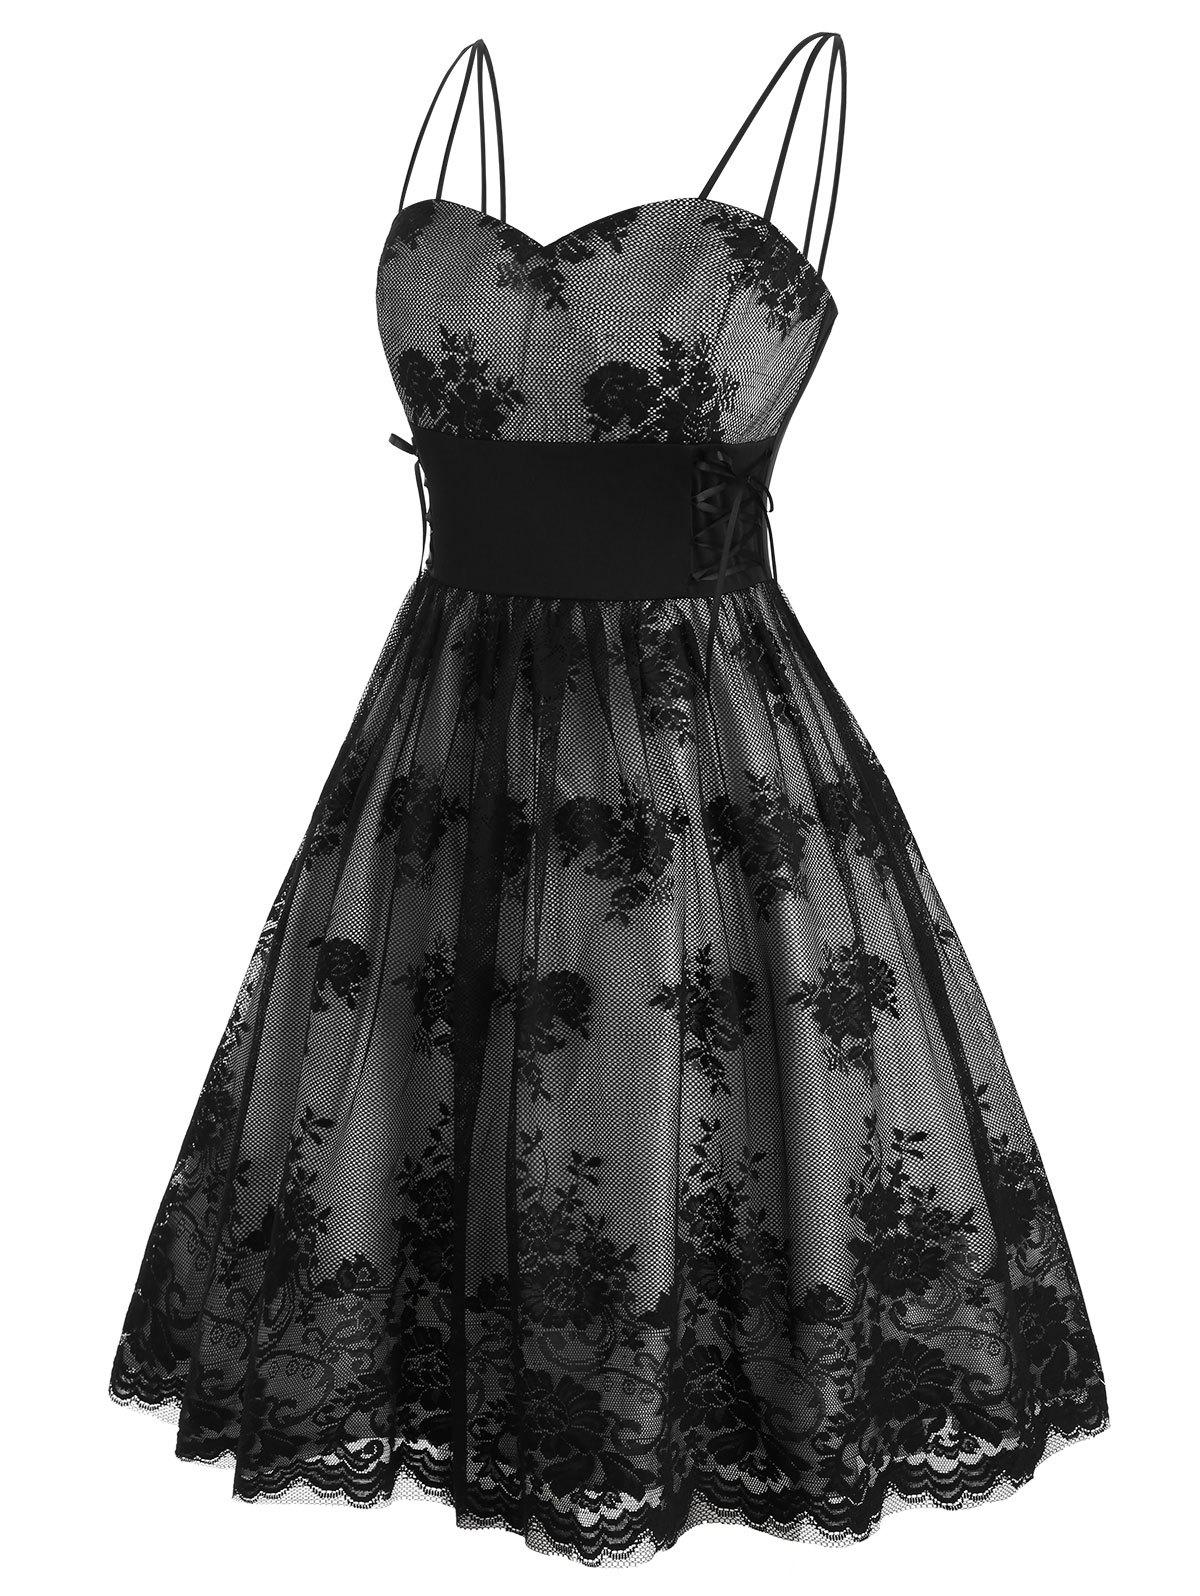 Discount Plus Size Lace Up Floral Mesh Party Cocktail Dress